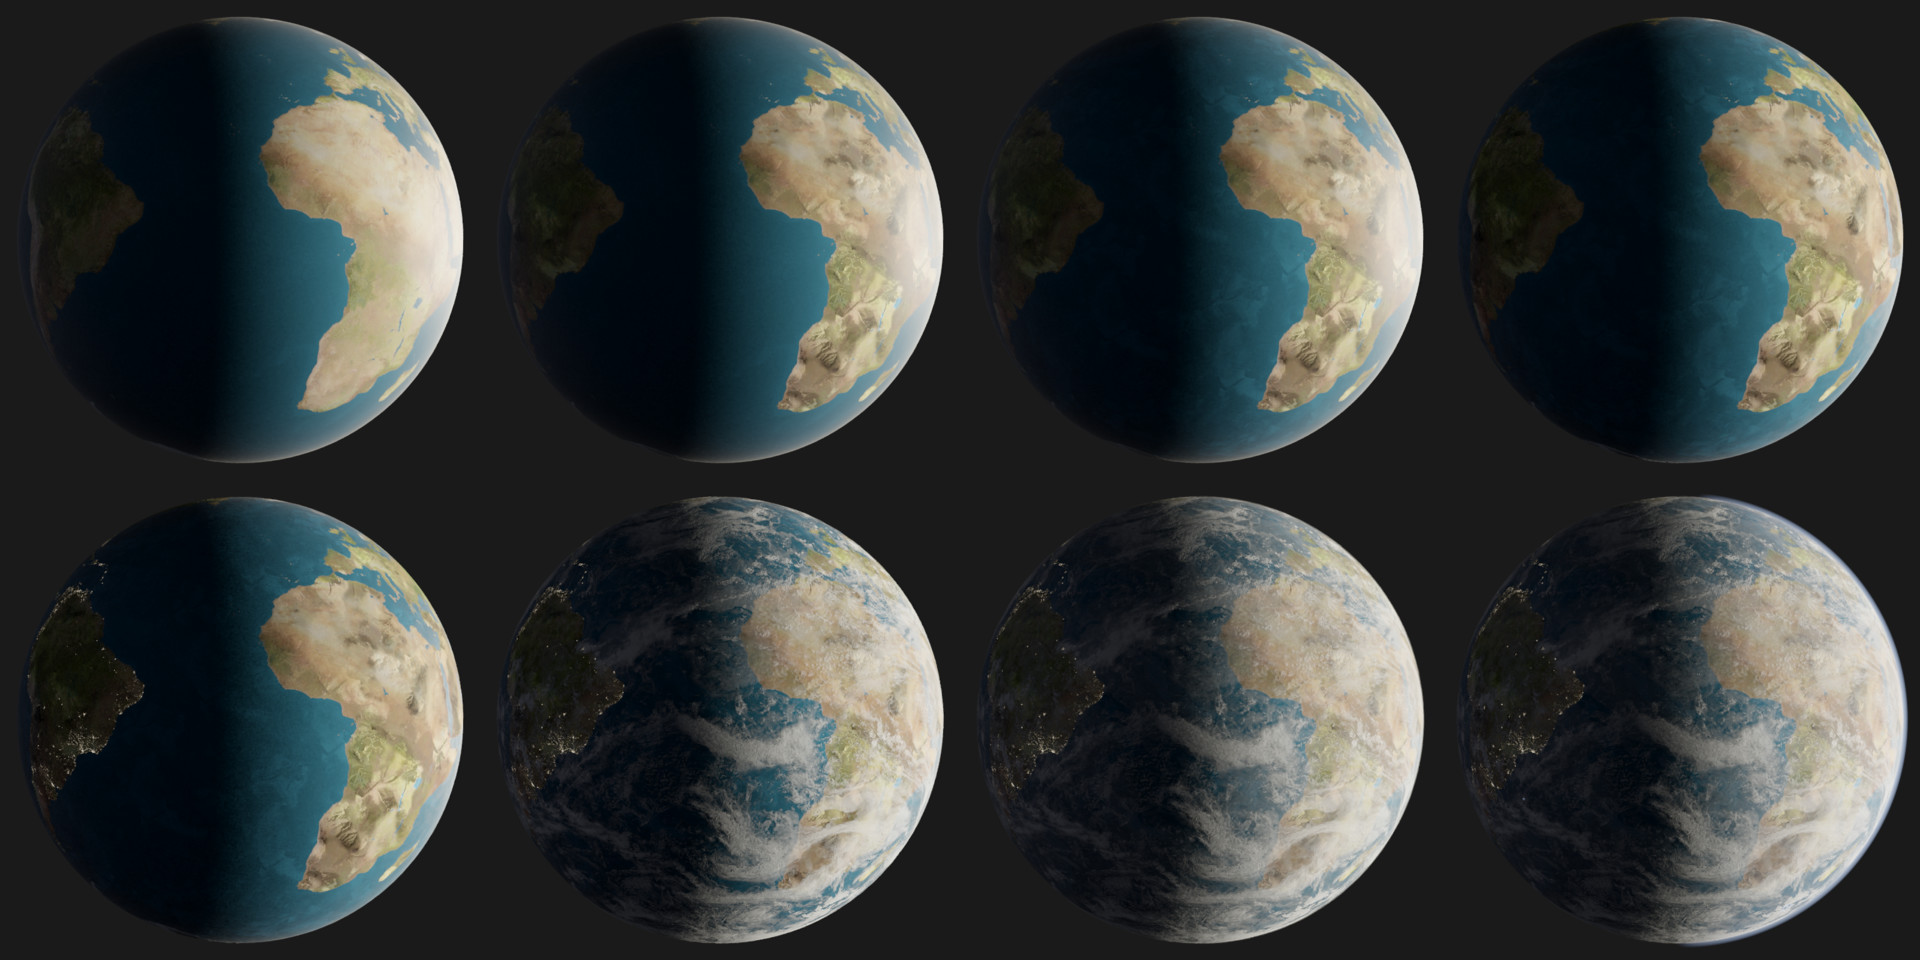 Breakdown of the workflow, from top left, to bottom right.